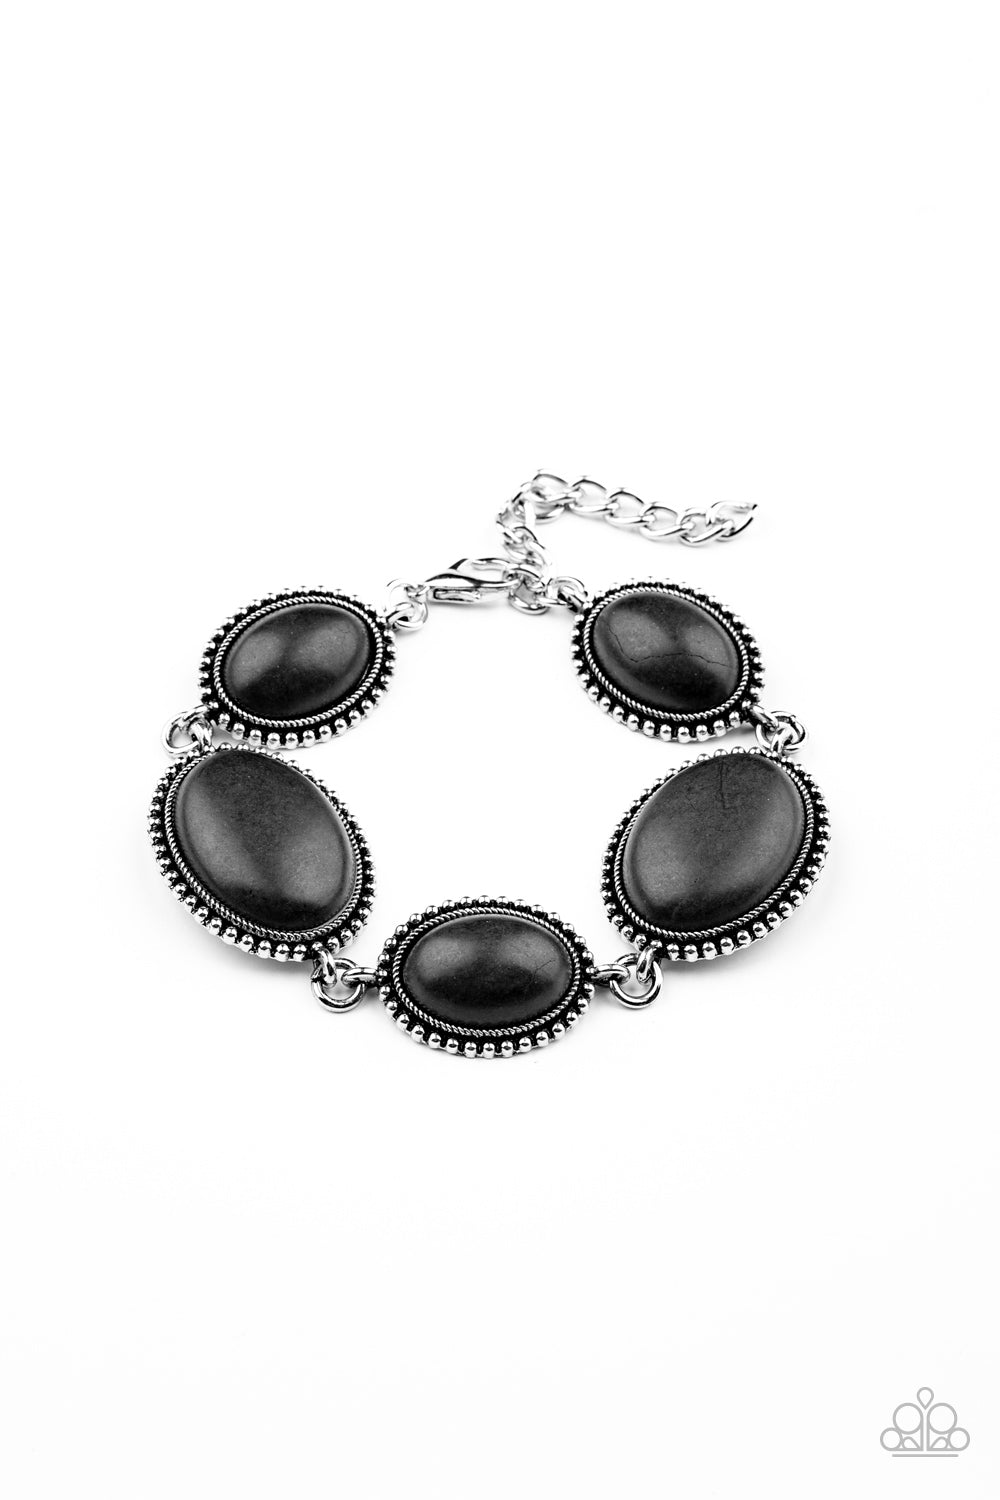 five-dollar-jewelry-river-view-black-bracelet-paparazzi-accessories